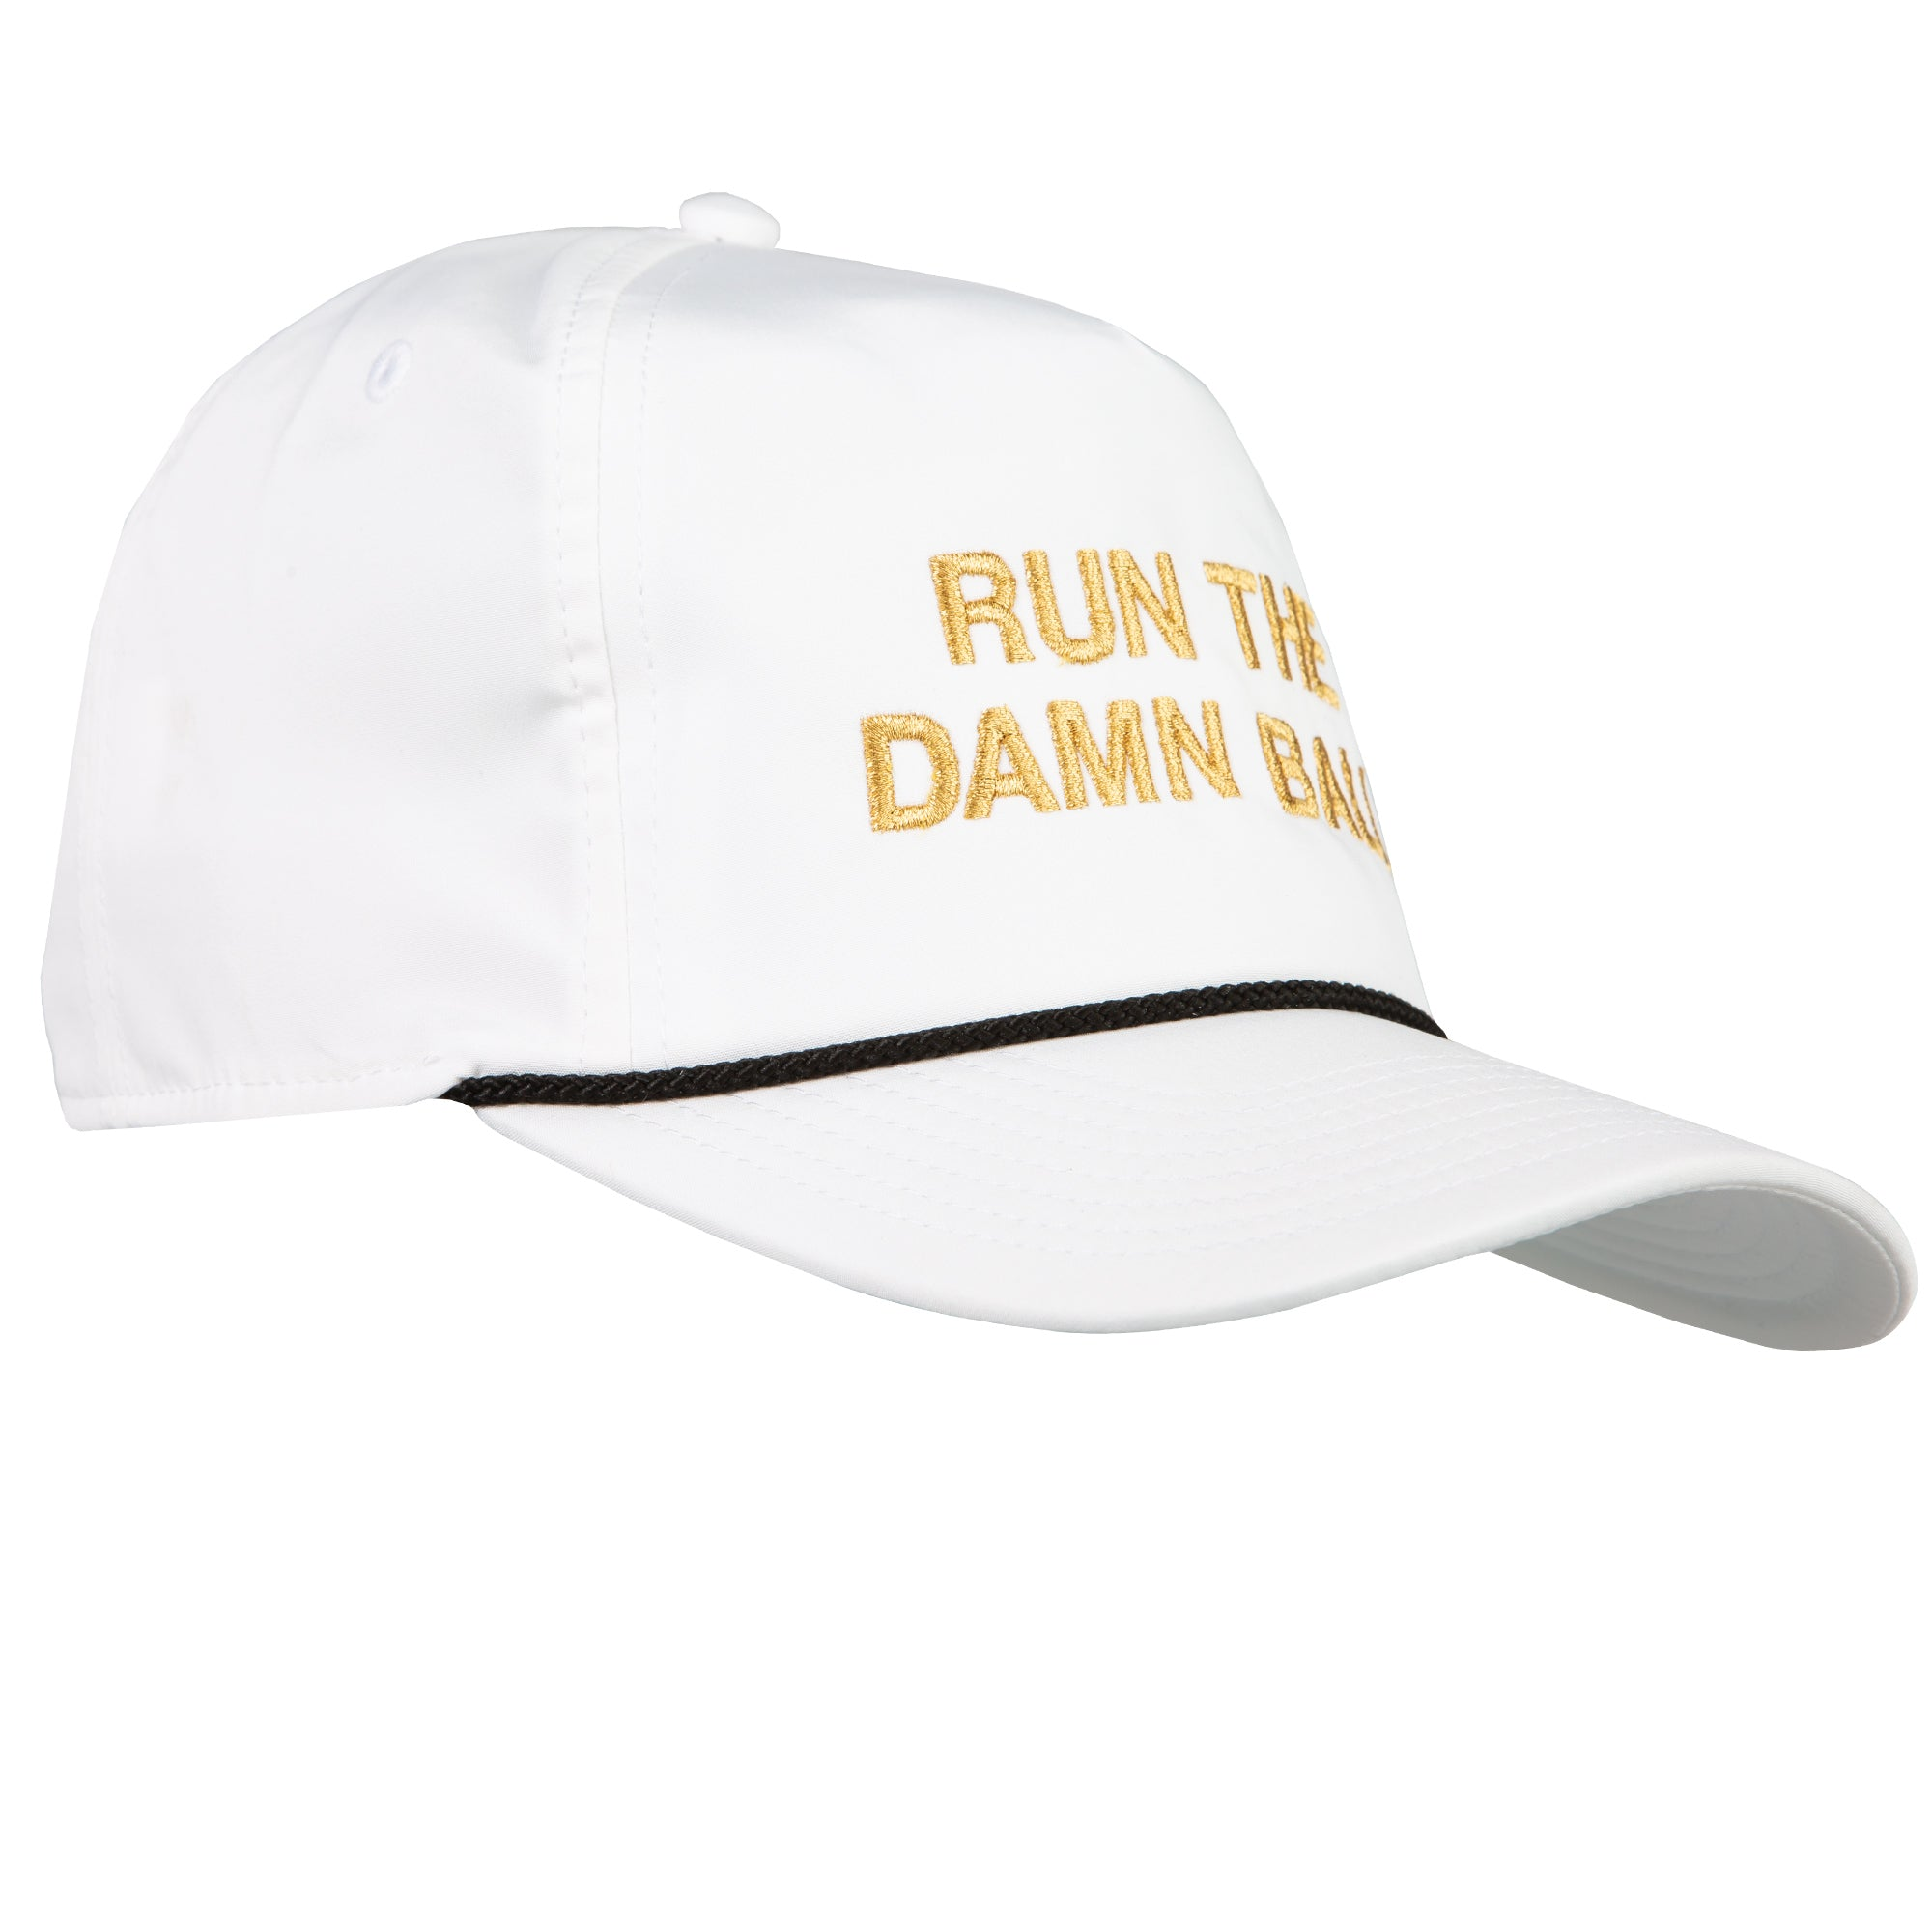 Black/Gold Run The Damn Ball Rope Hat - OnwardReserve